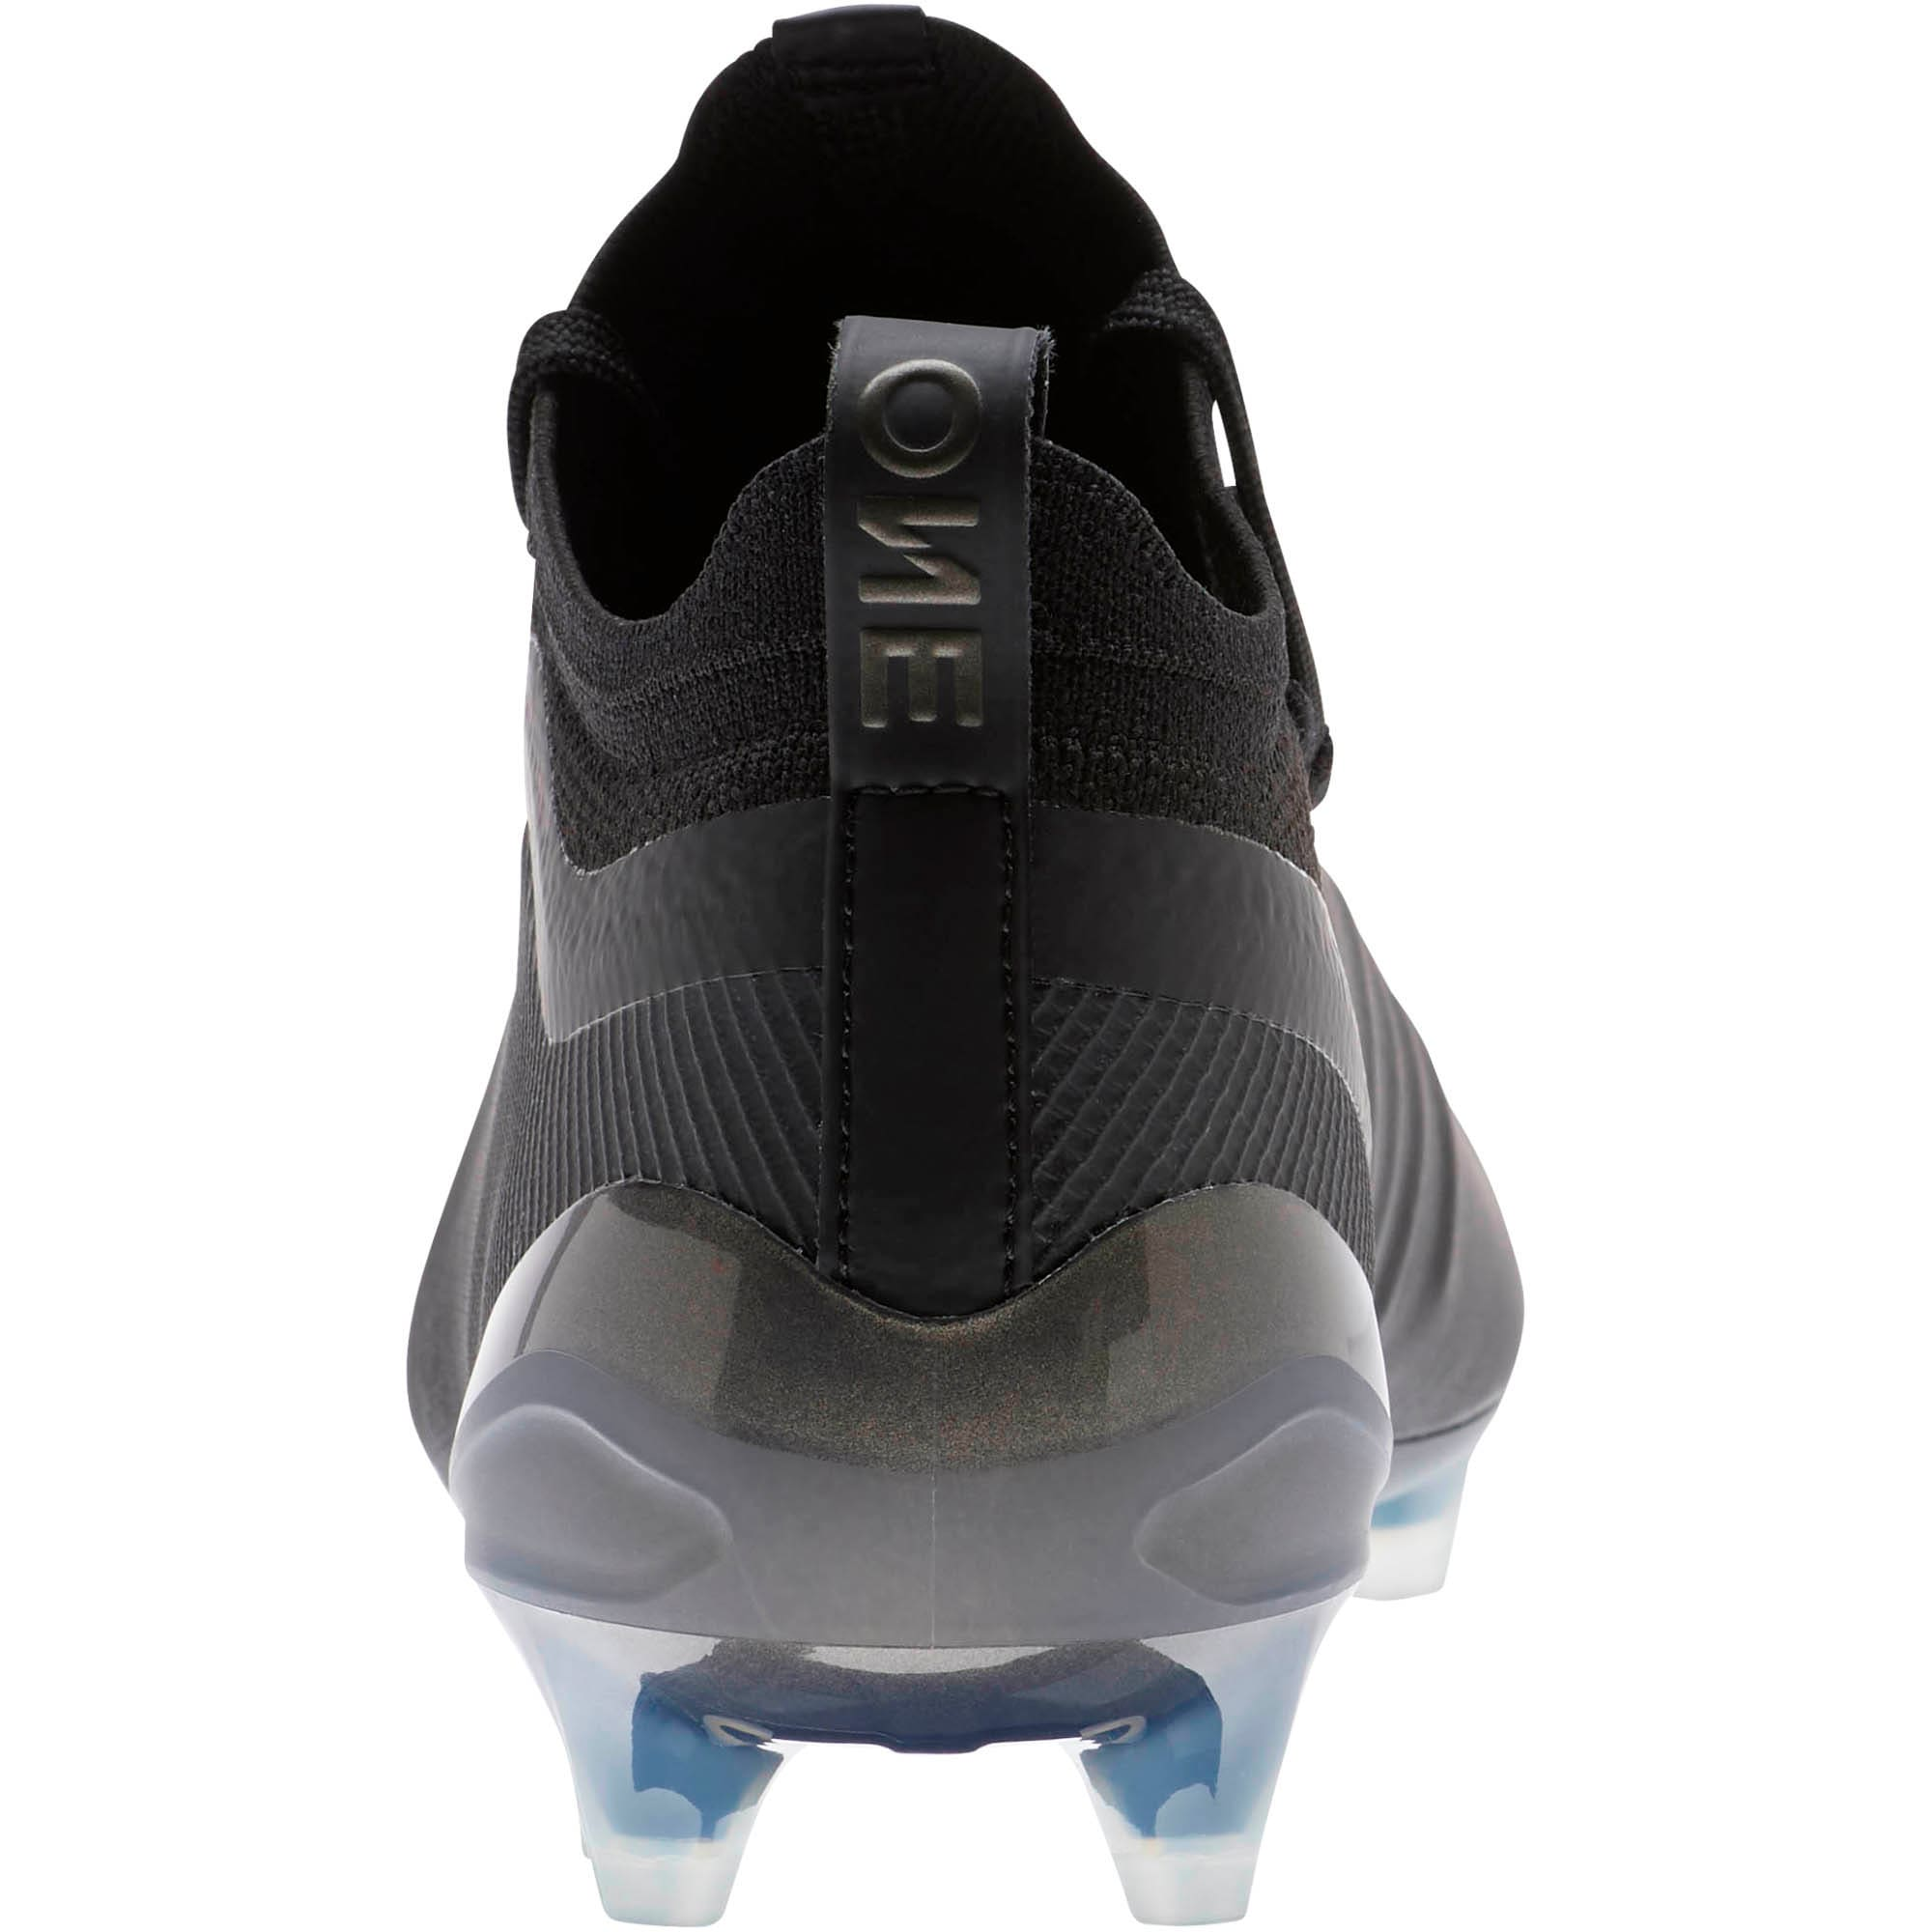 Thumbnail 3 of PUMA ONE 5.1 FG/AG Men's Soccer Cleats, Black-Black-Puma Aged Silver, medium